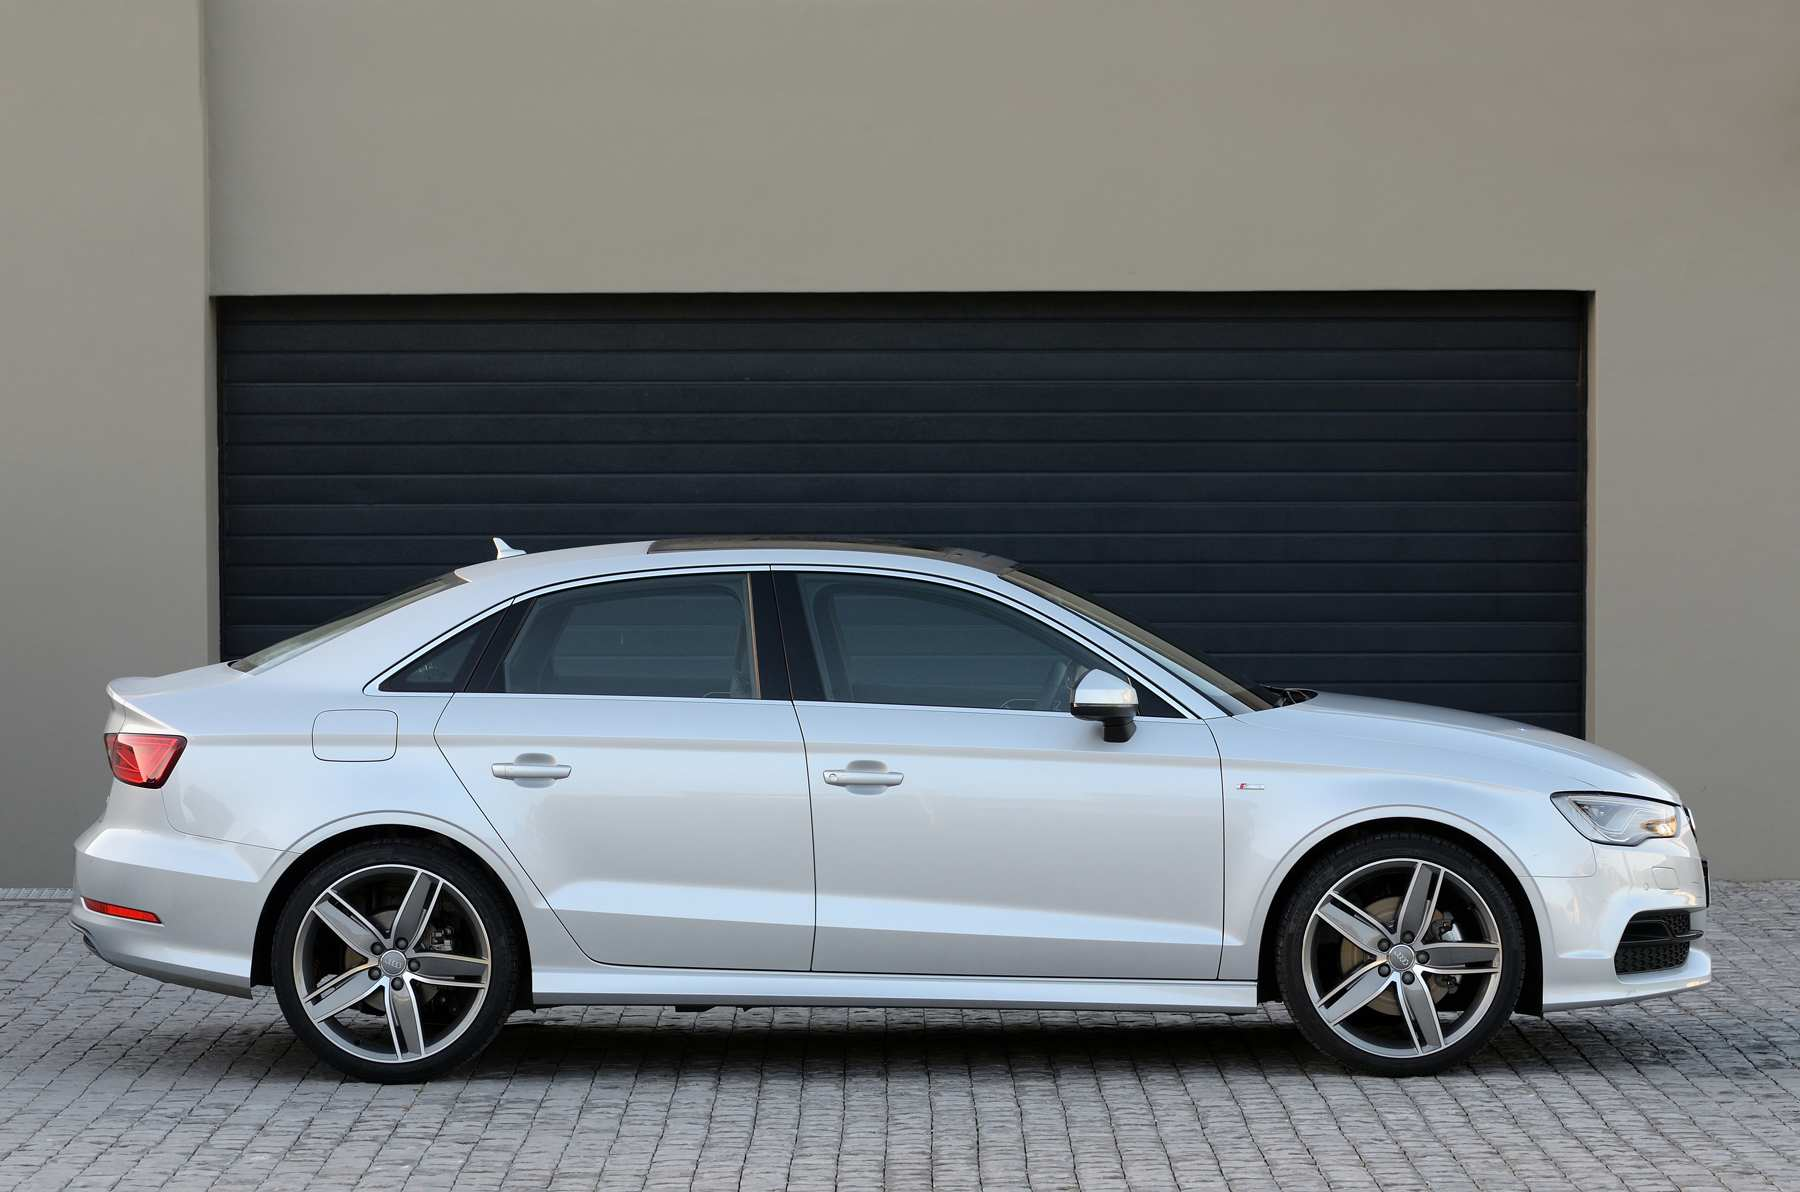 Audi A3 Sedan 1.4 TFSI (2014): New Car Review